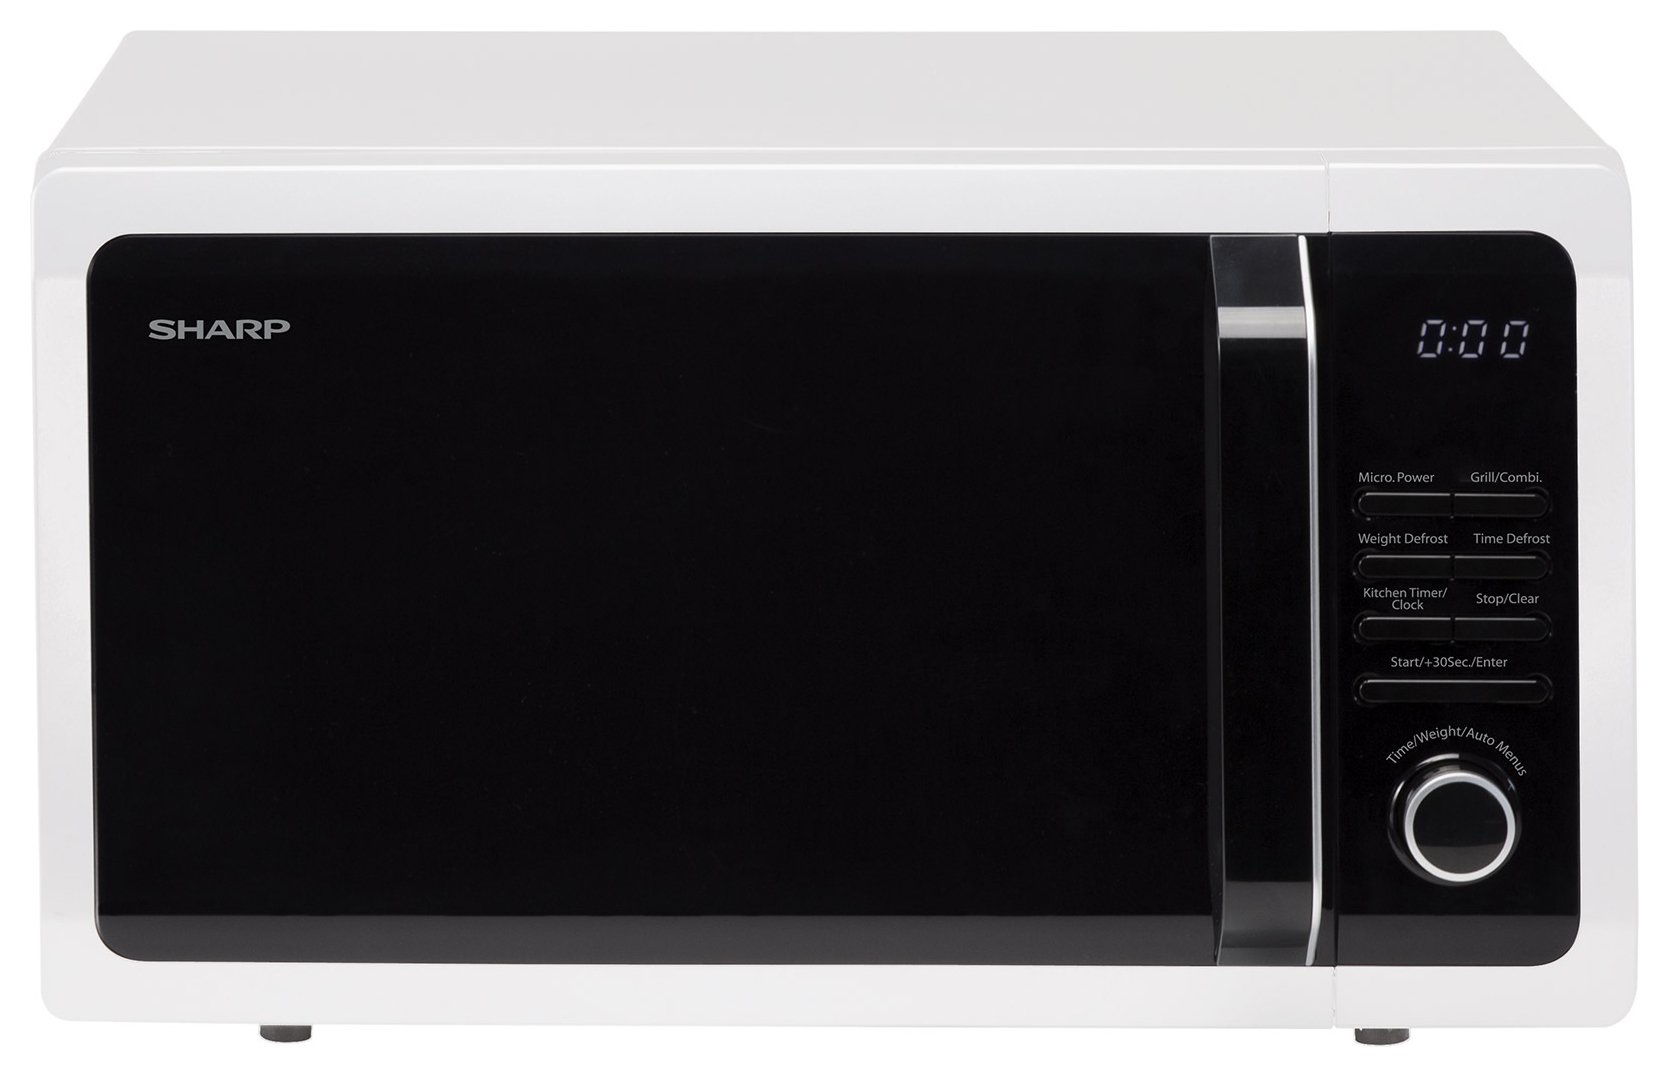 Sharp - R764WM 900W Microwave with Grill - White